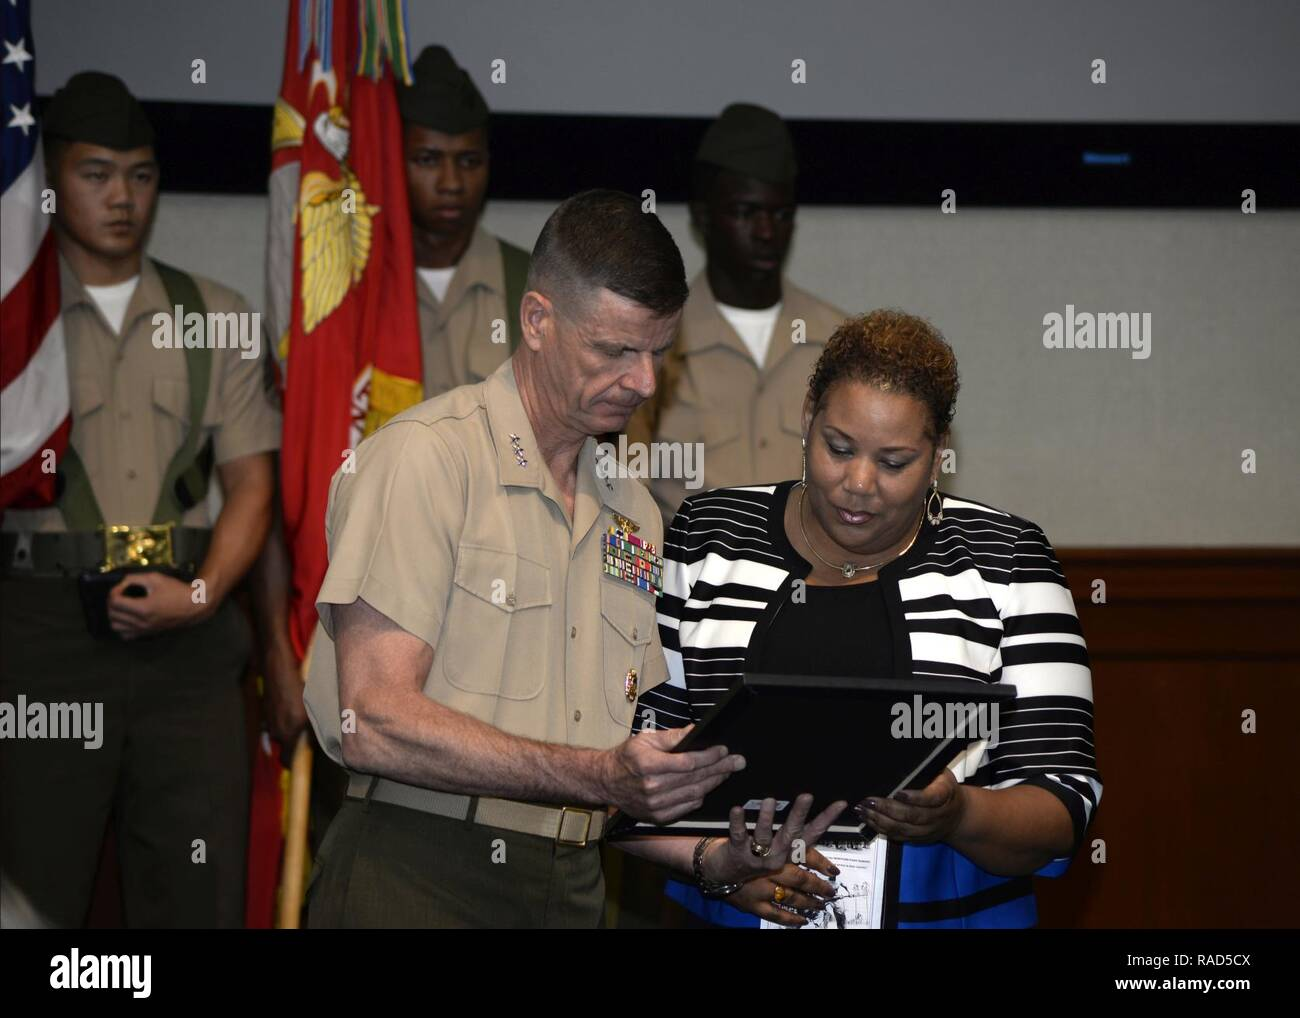 Kim Fountaine, right, accepts a certificate on behalf of her father, U.S. Marine Corps Pfc. Charles Robert Fountain, from Lt. Gen. William D. Beydler, commander of U.S. Marine Forces Central Command, during a Congressional Gold Medal ceremony at MacDill Air Force Base, Fla., Jan. 27, 2017. The certificate was awarded to Fountain who served in the Montford Point Marines, an all African-American unit that was segregated throughout World War II. - Stock Image